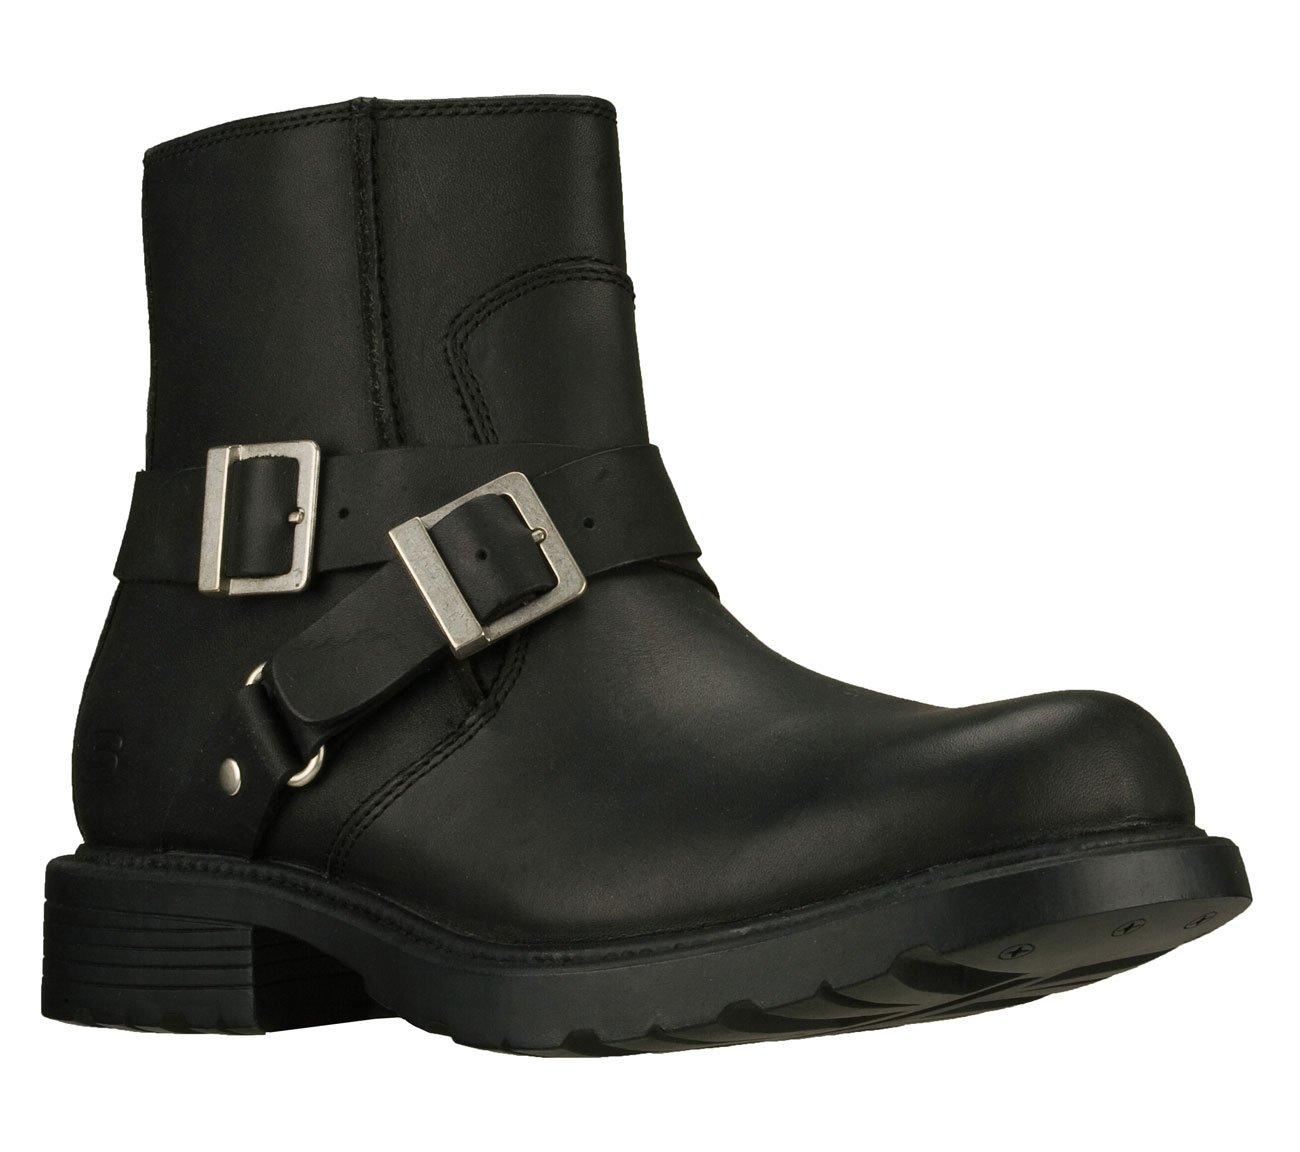 cinder twist skechers boots motorcycle shoes